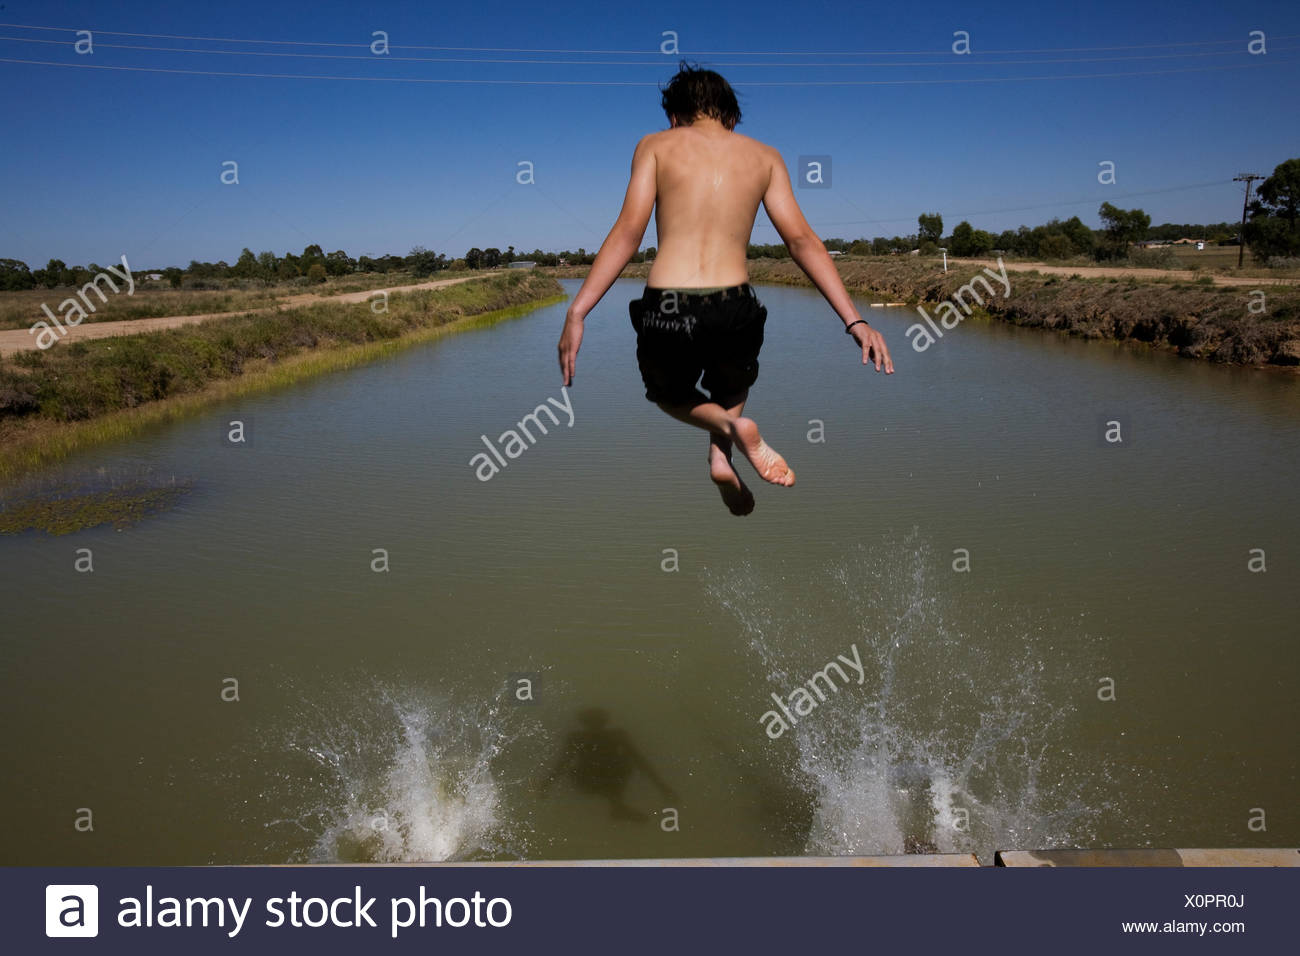 A boy jumps into the Mulwala Canal, the largest irrigation canal in the Murray-Darling Basin. - Stock Image